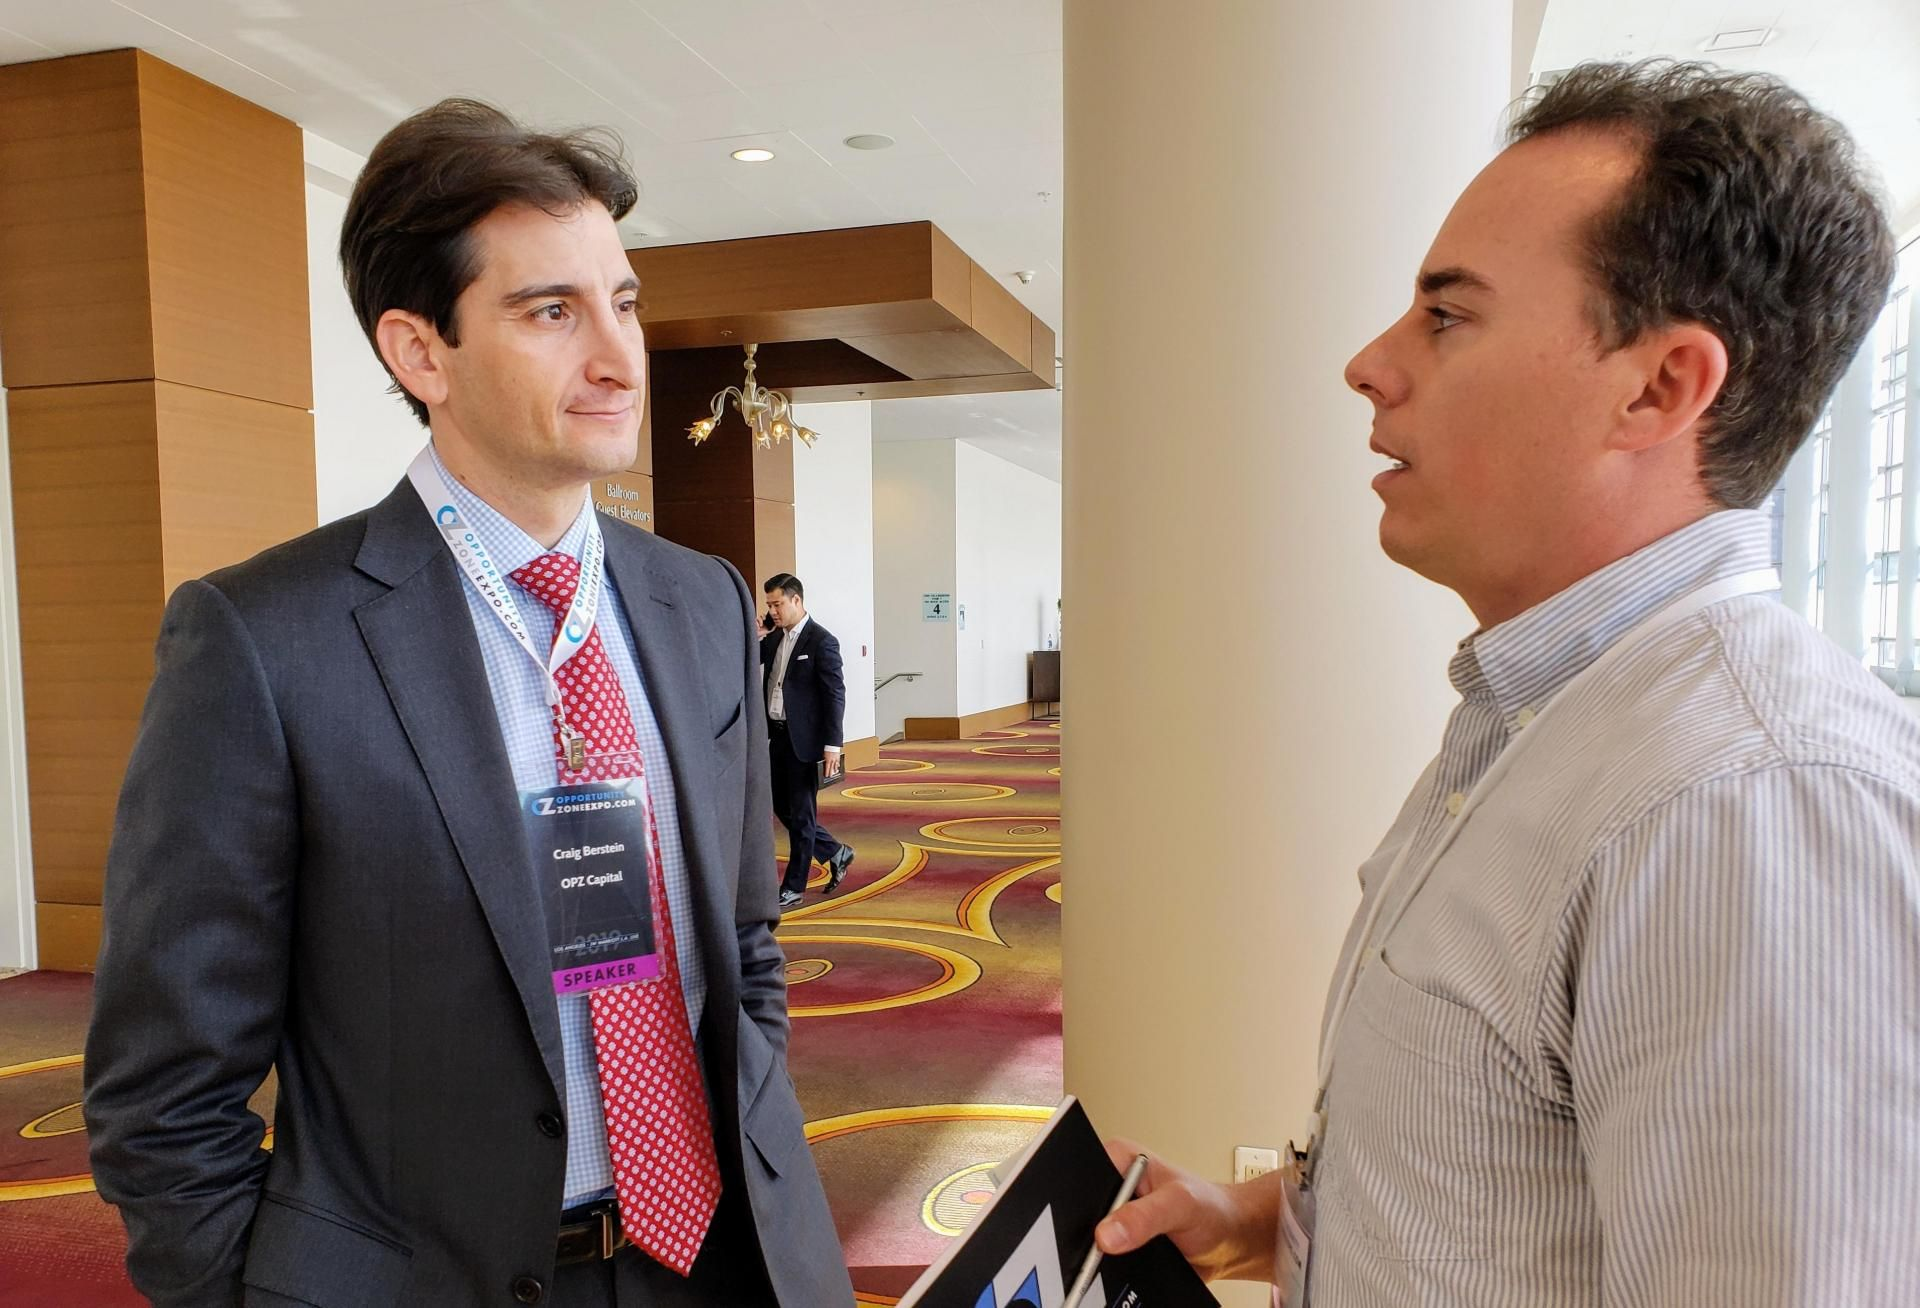 OPZ Bernstein principal Craig Bernstein (left) talks to an attendee at an opportunity zone event in Los Angeles